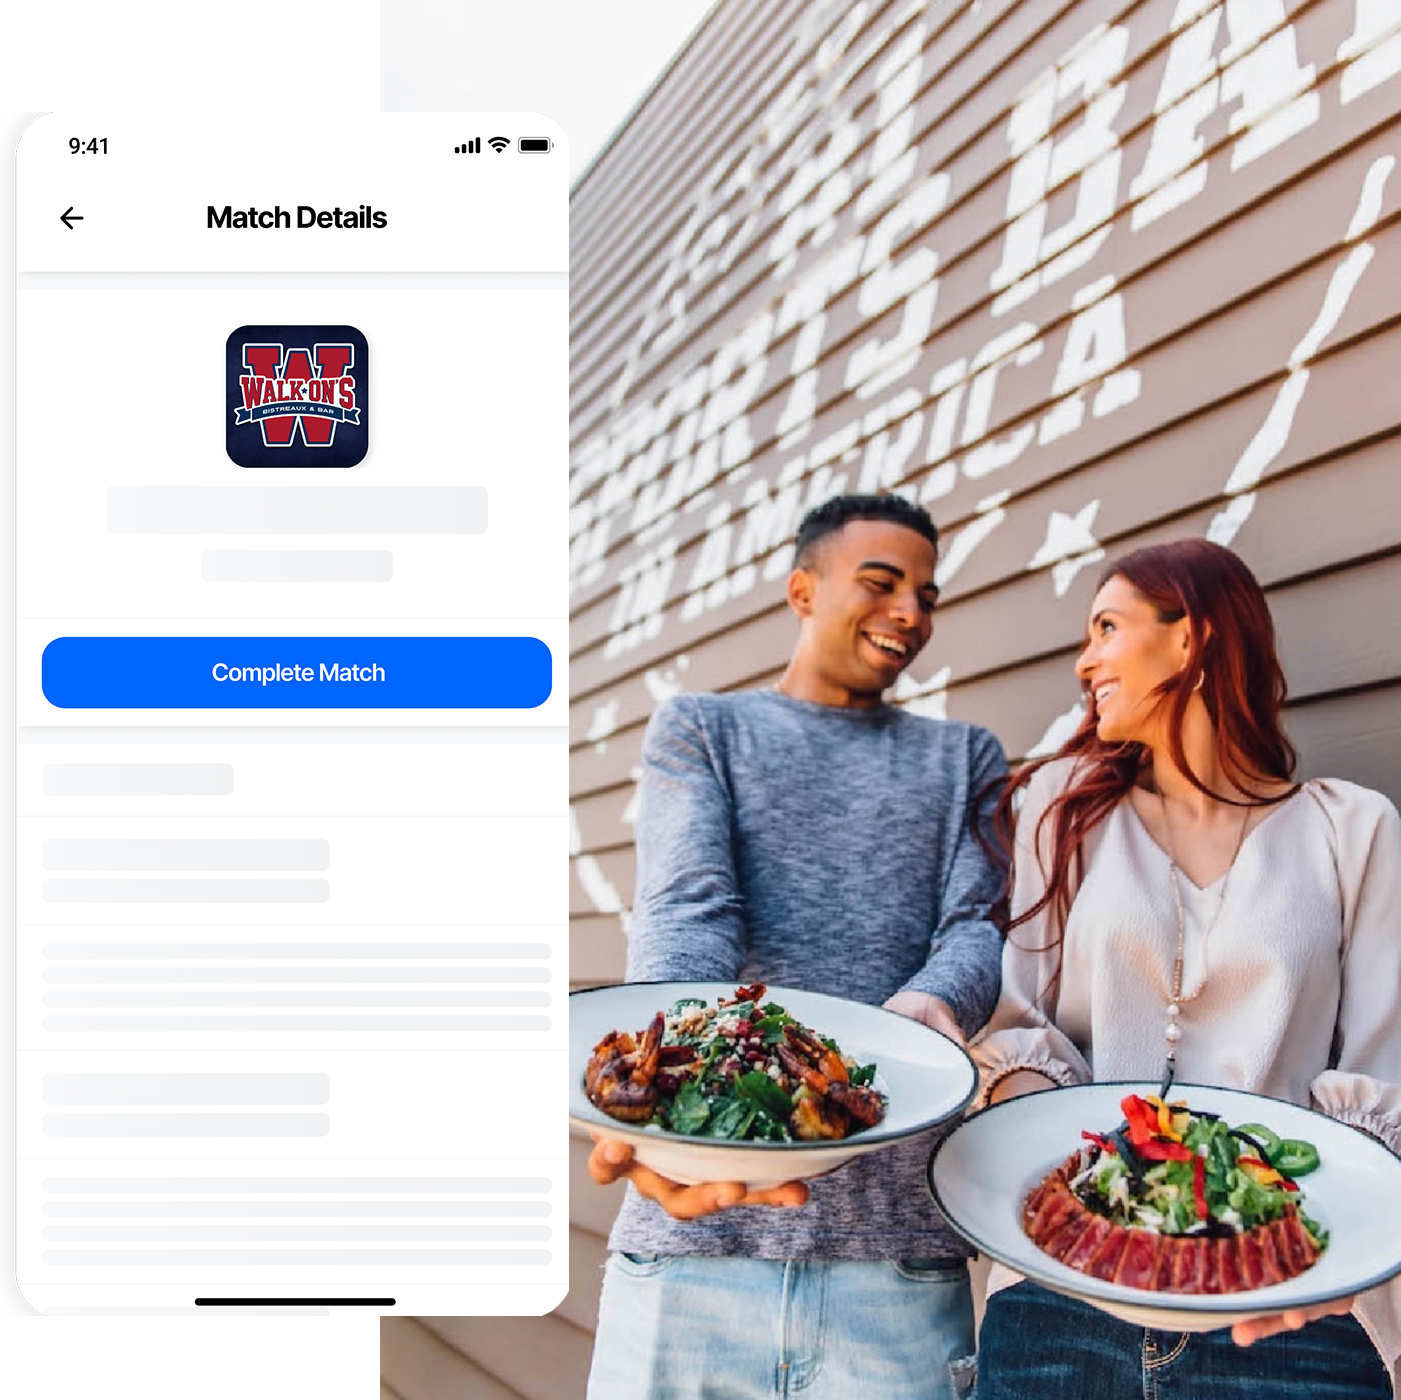 Image of a burger paired with a mockup of the app.